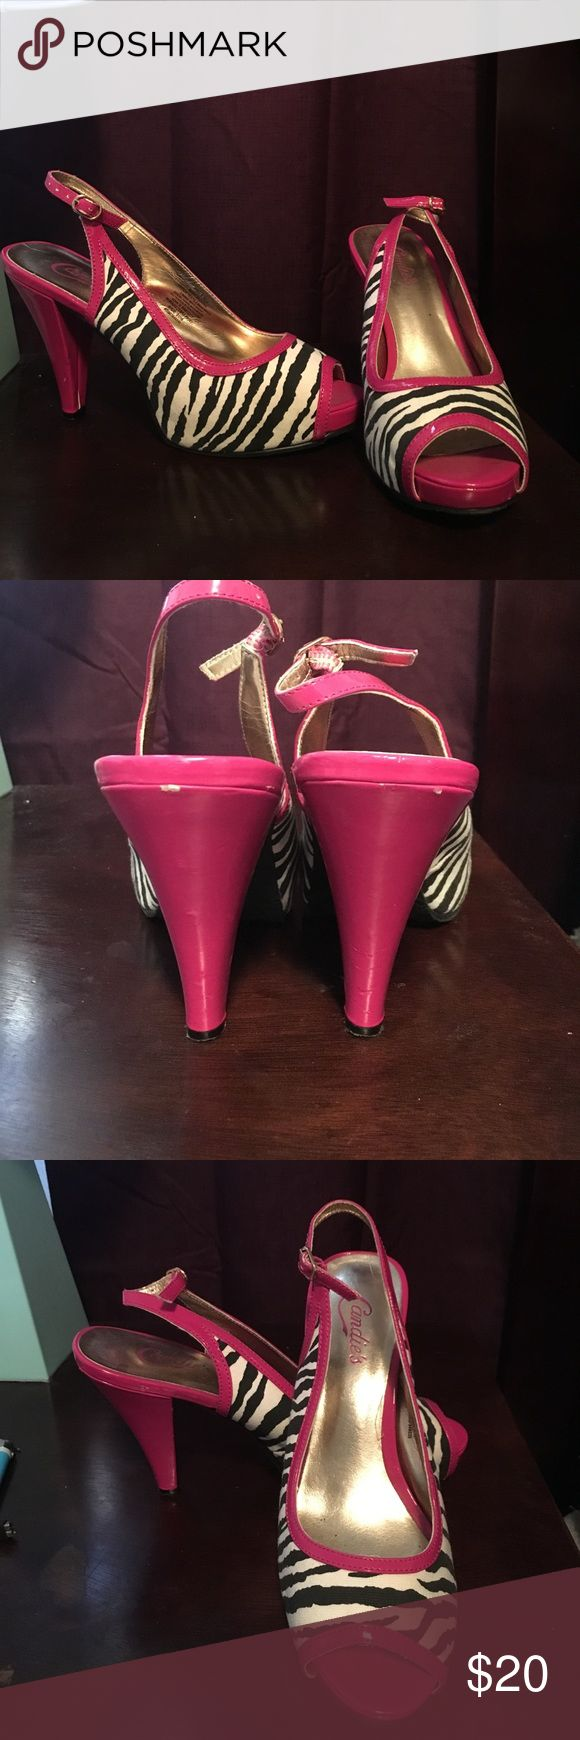 Candies zebra heels Women's size 9 medium width zebra heels with pink detail. Couple of scuffs on heels (see picture). Heels height is about 4inches! Candie's Shoes Heels